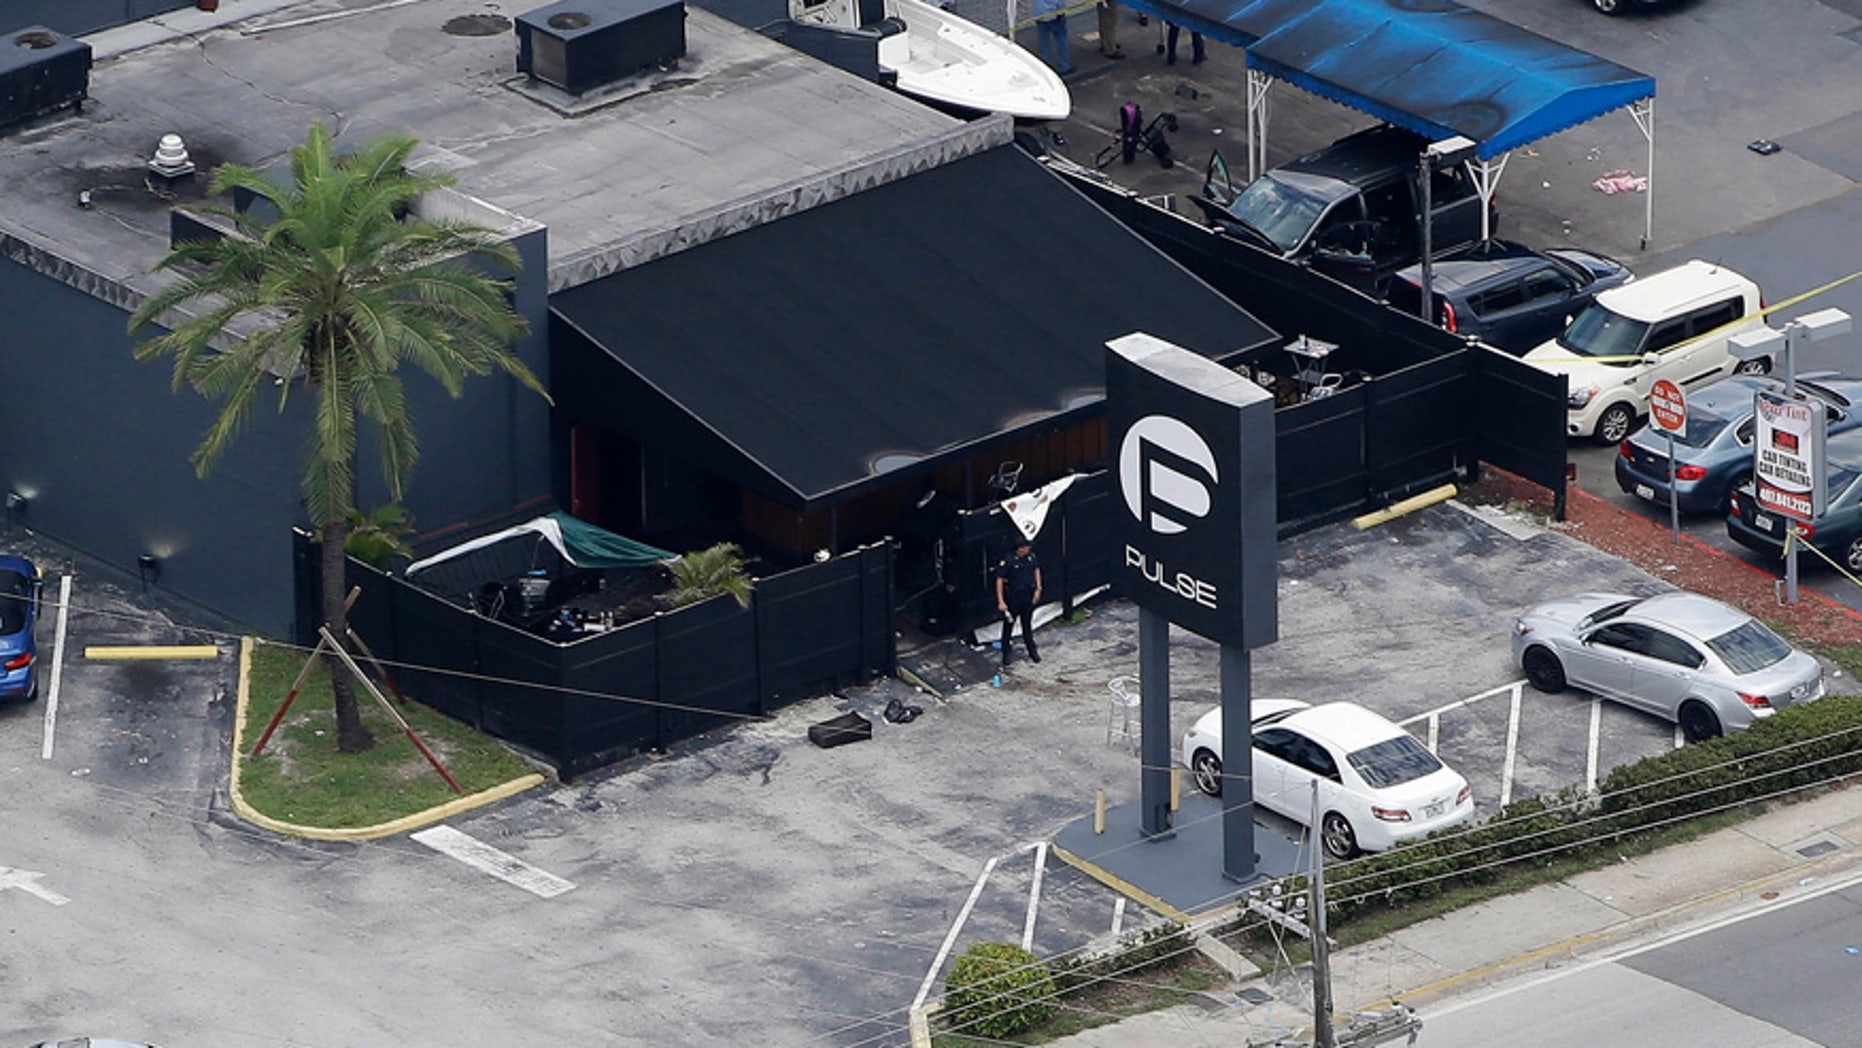 In this June 12, 2016 file photo, law enforcement officials work at the Pulse nightclub in Orlando, Fla., following a mass shooting.